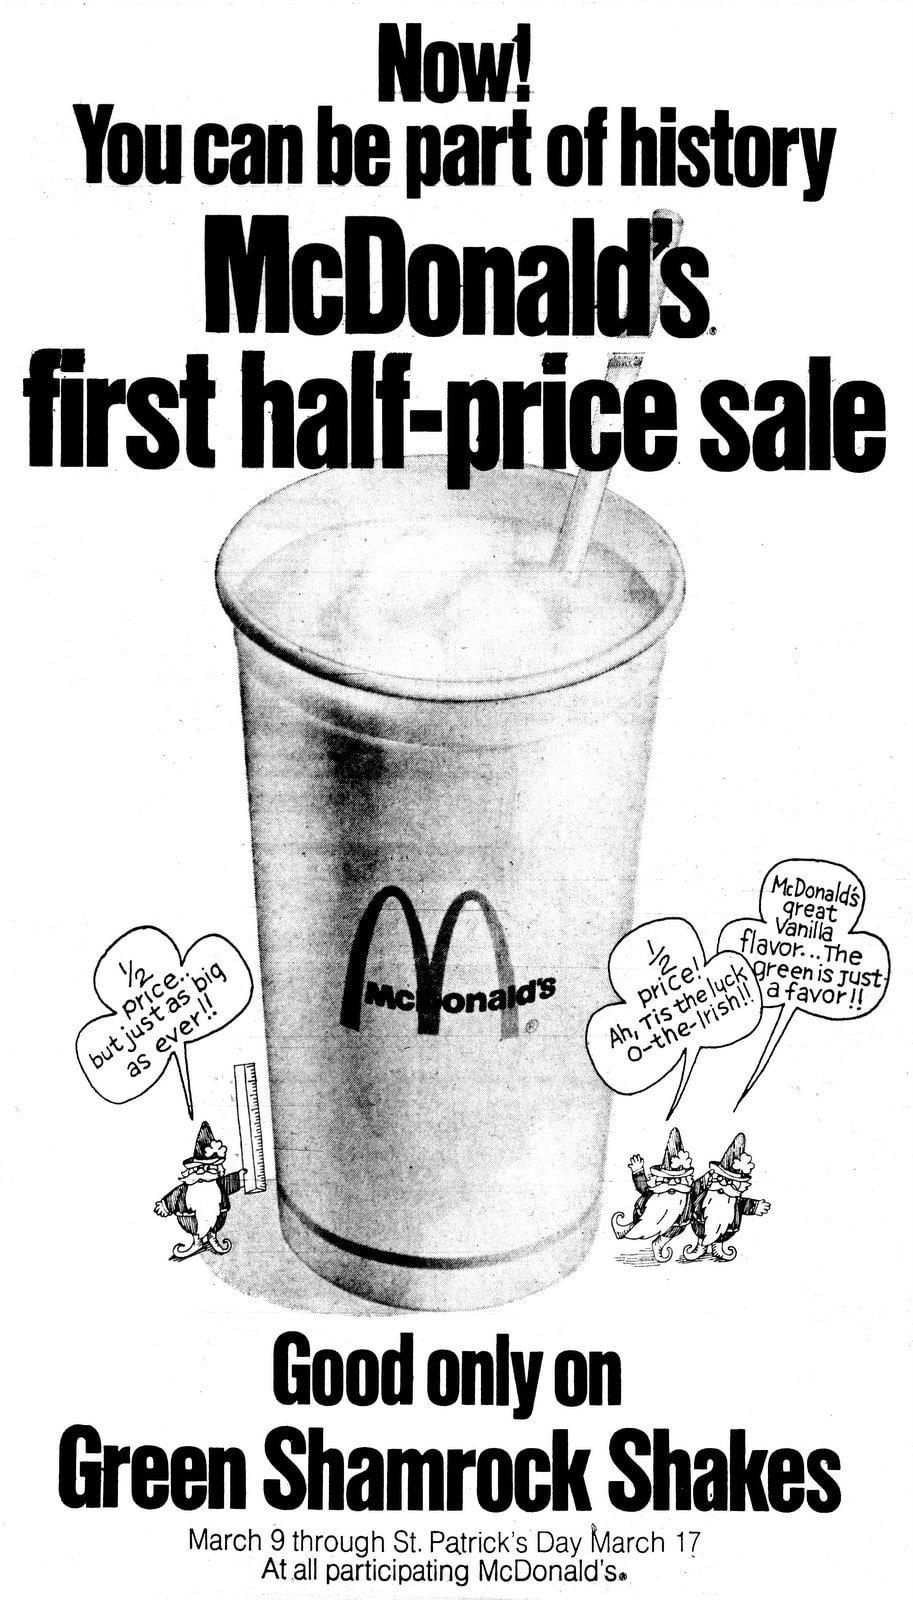 Vanilla-flavor Shamrock Shakes - March 11 1973 - Long Beach Press-Telegram